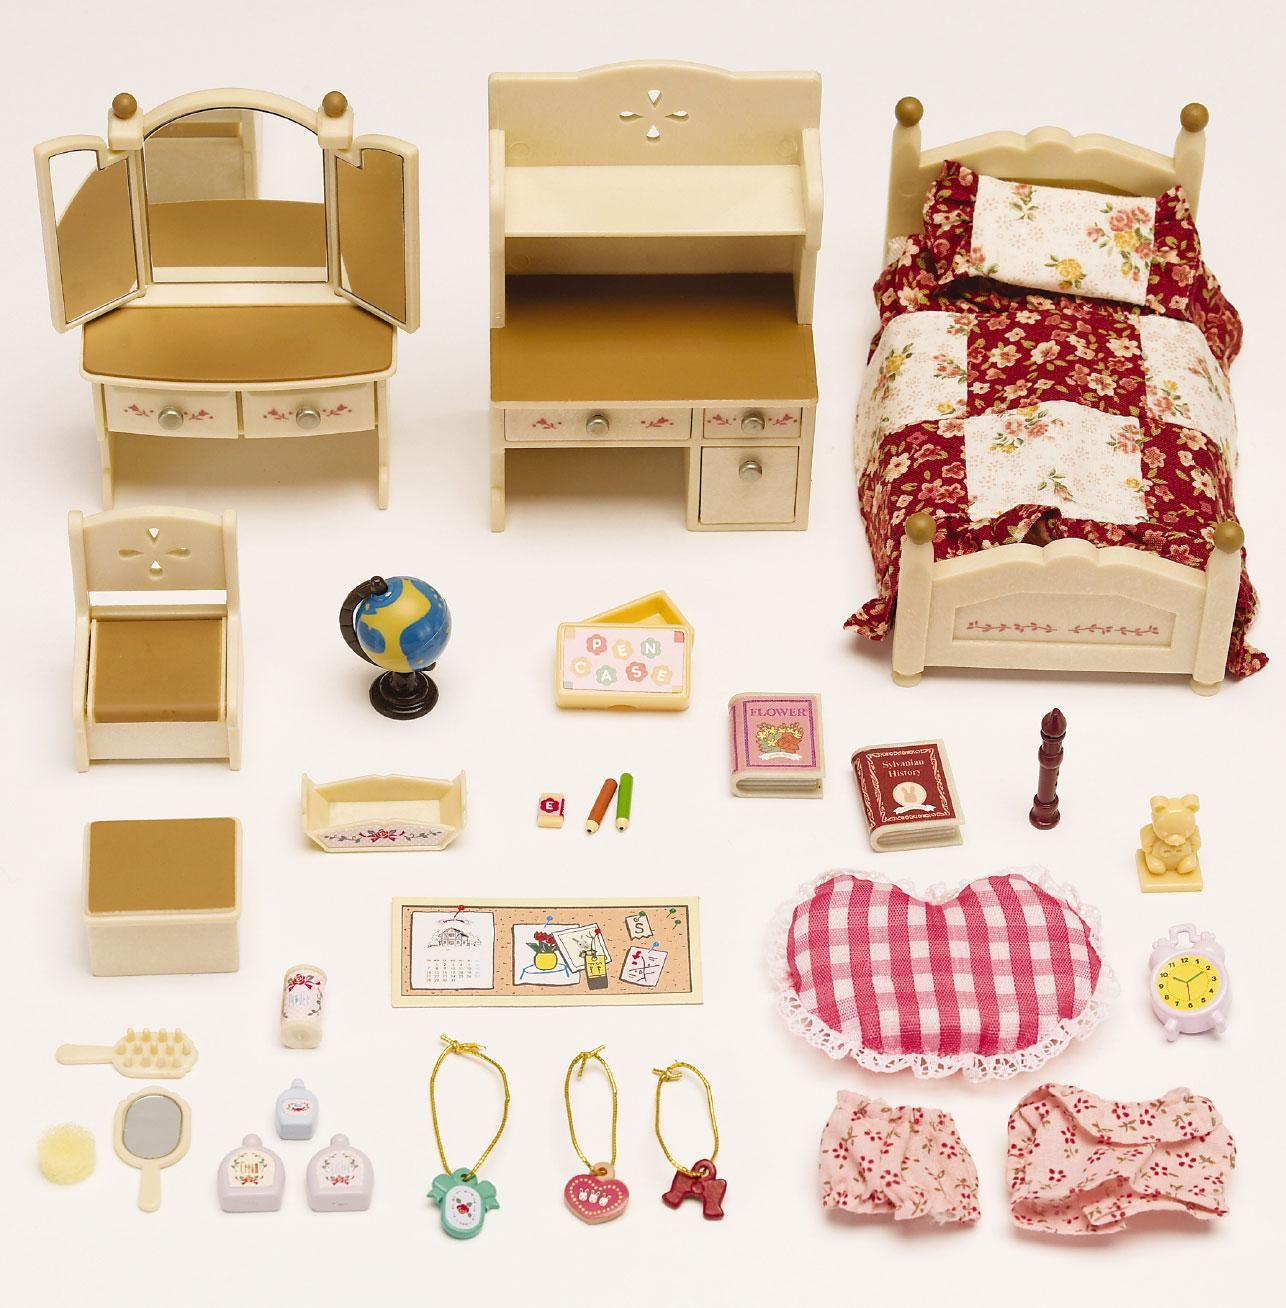 Beautiful Calico Critters Bedroom Set Painting